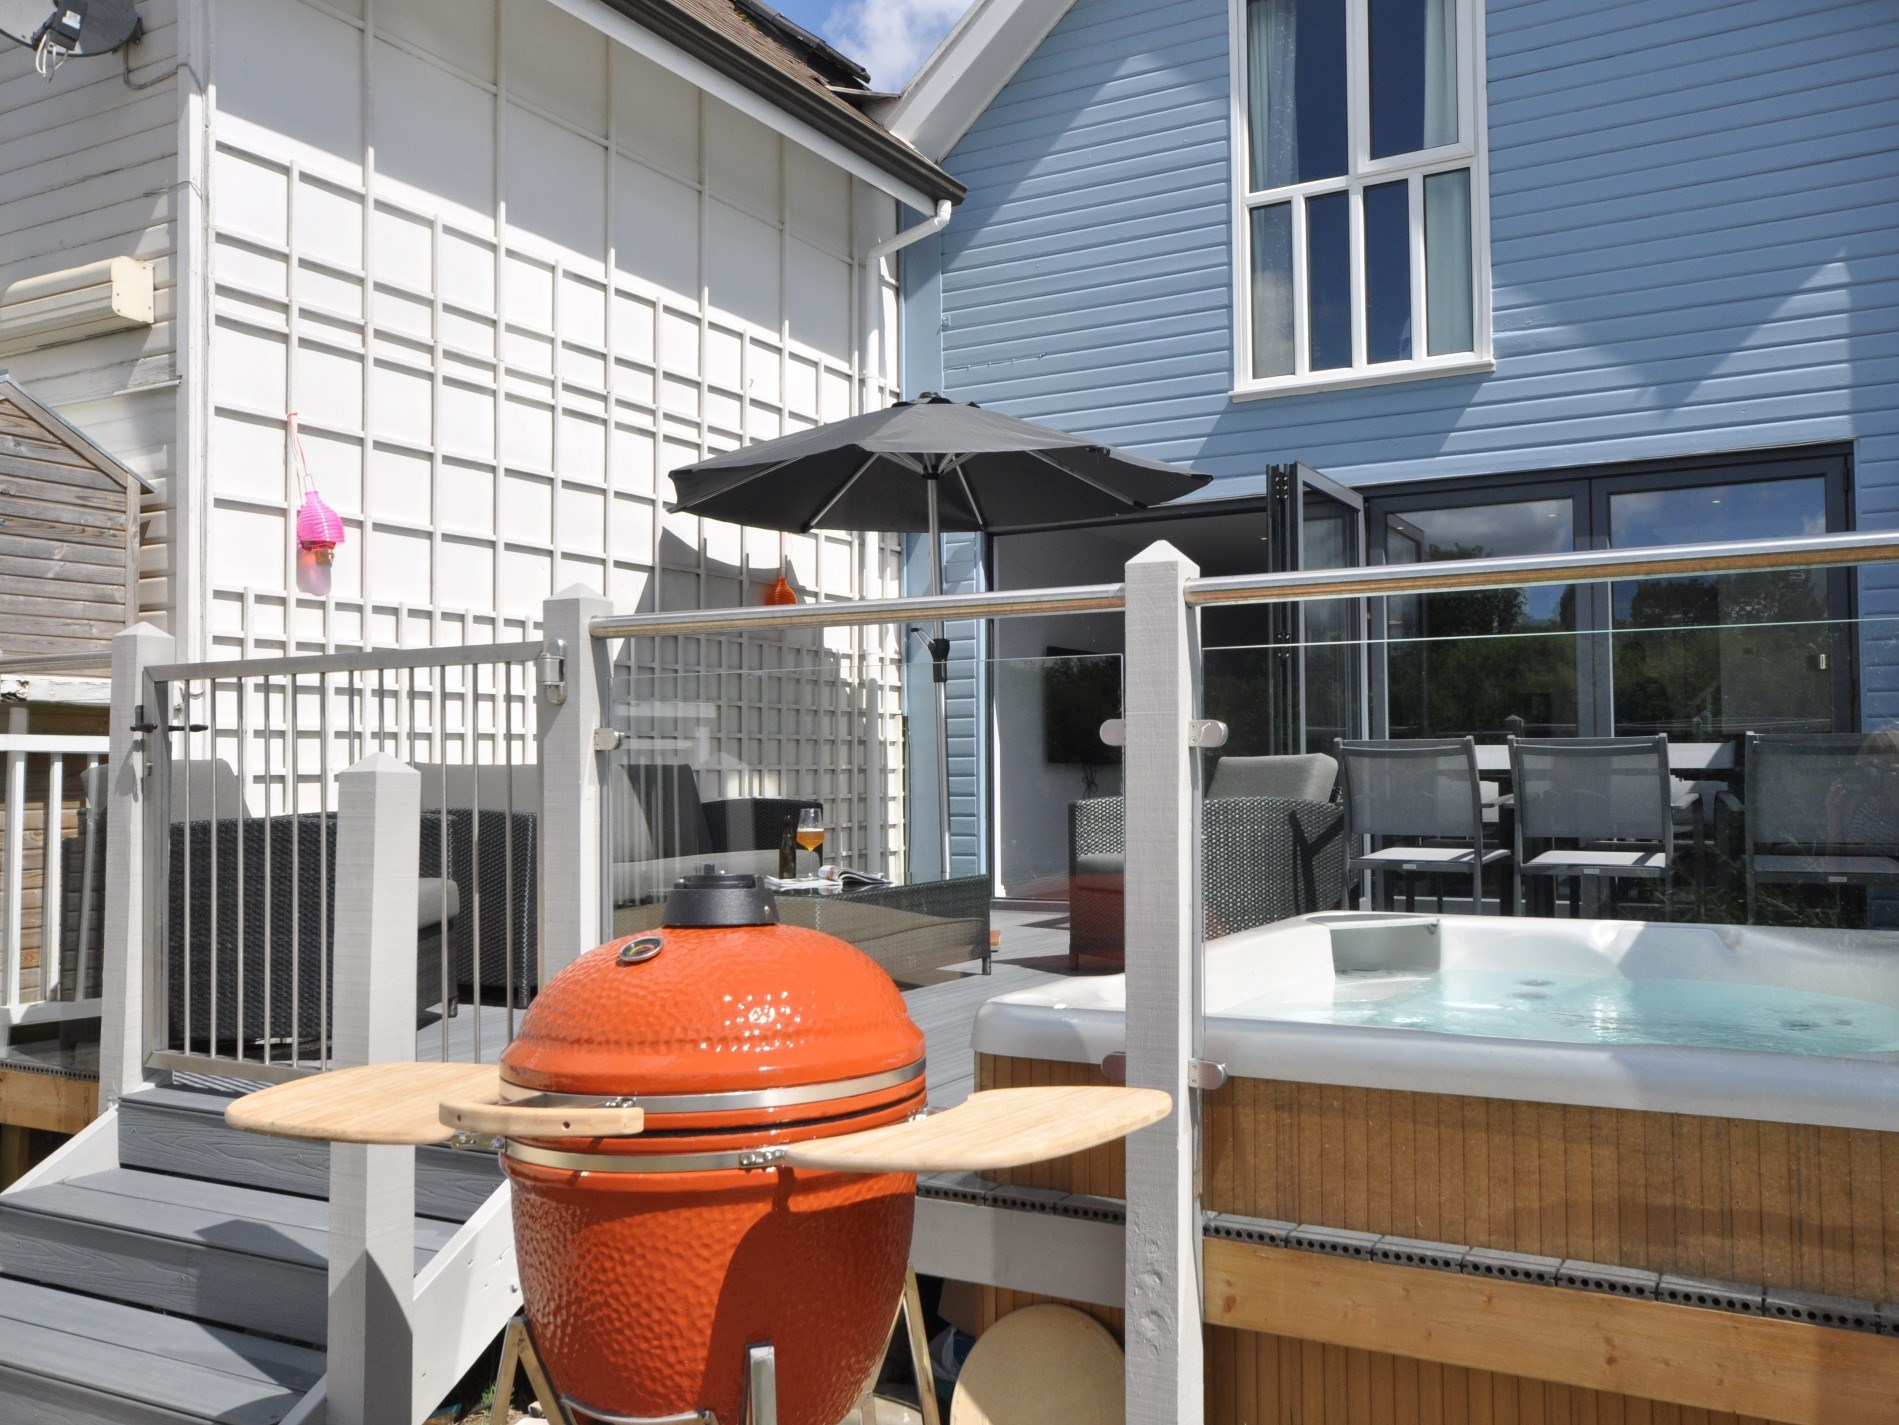 Make use of the BBQ for summer dining